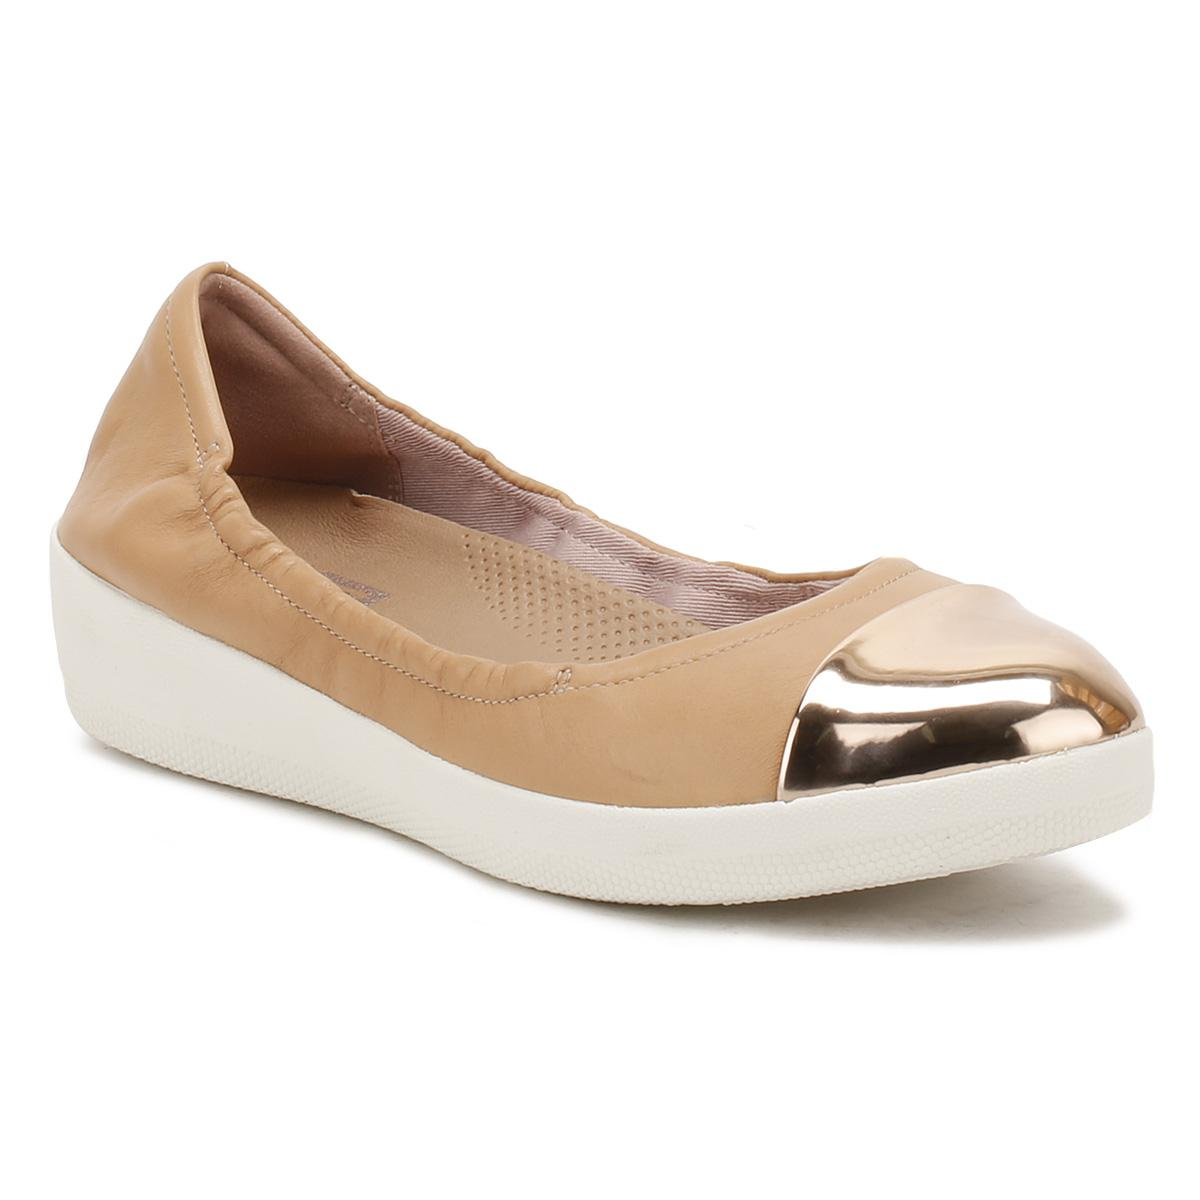 ecd9aff99b38 Fitflop Womens Nude Pink Superbendy Mirror-toe Ballerinas in Natural ...